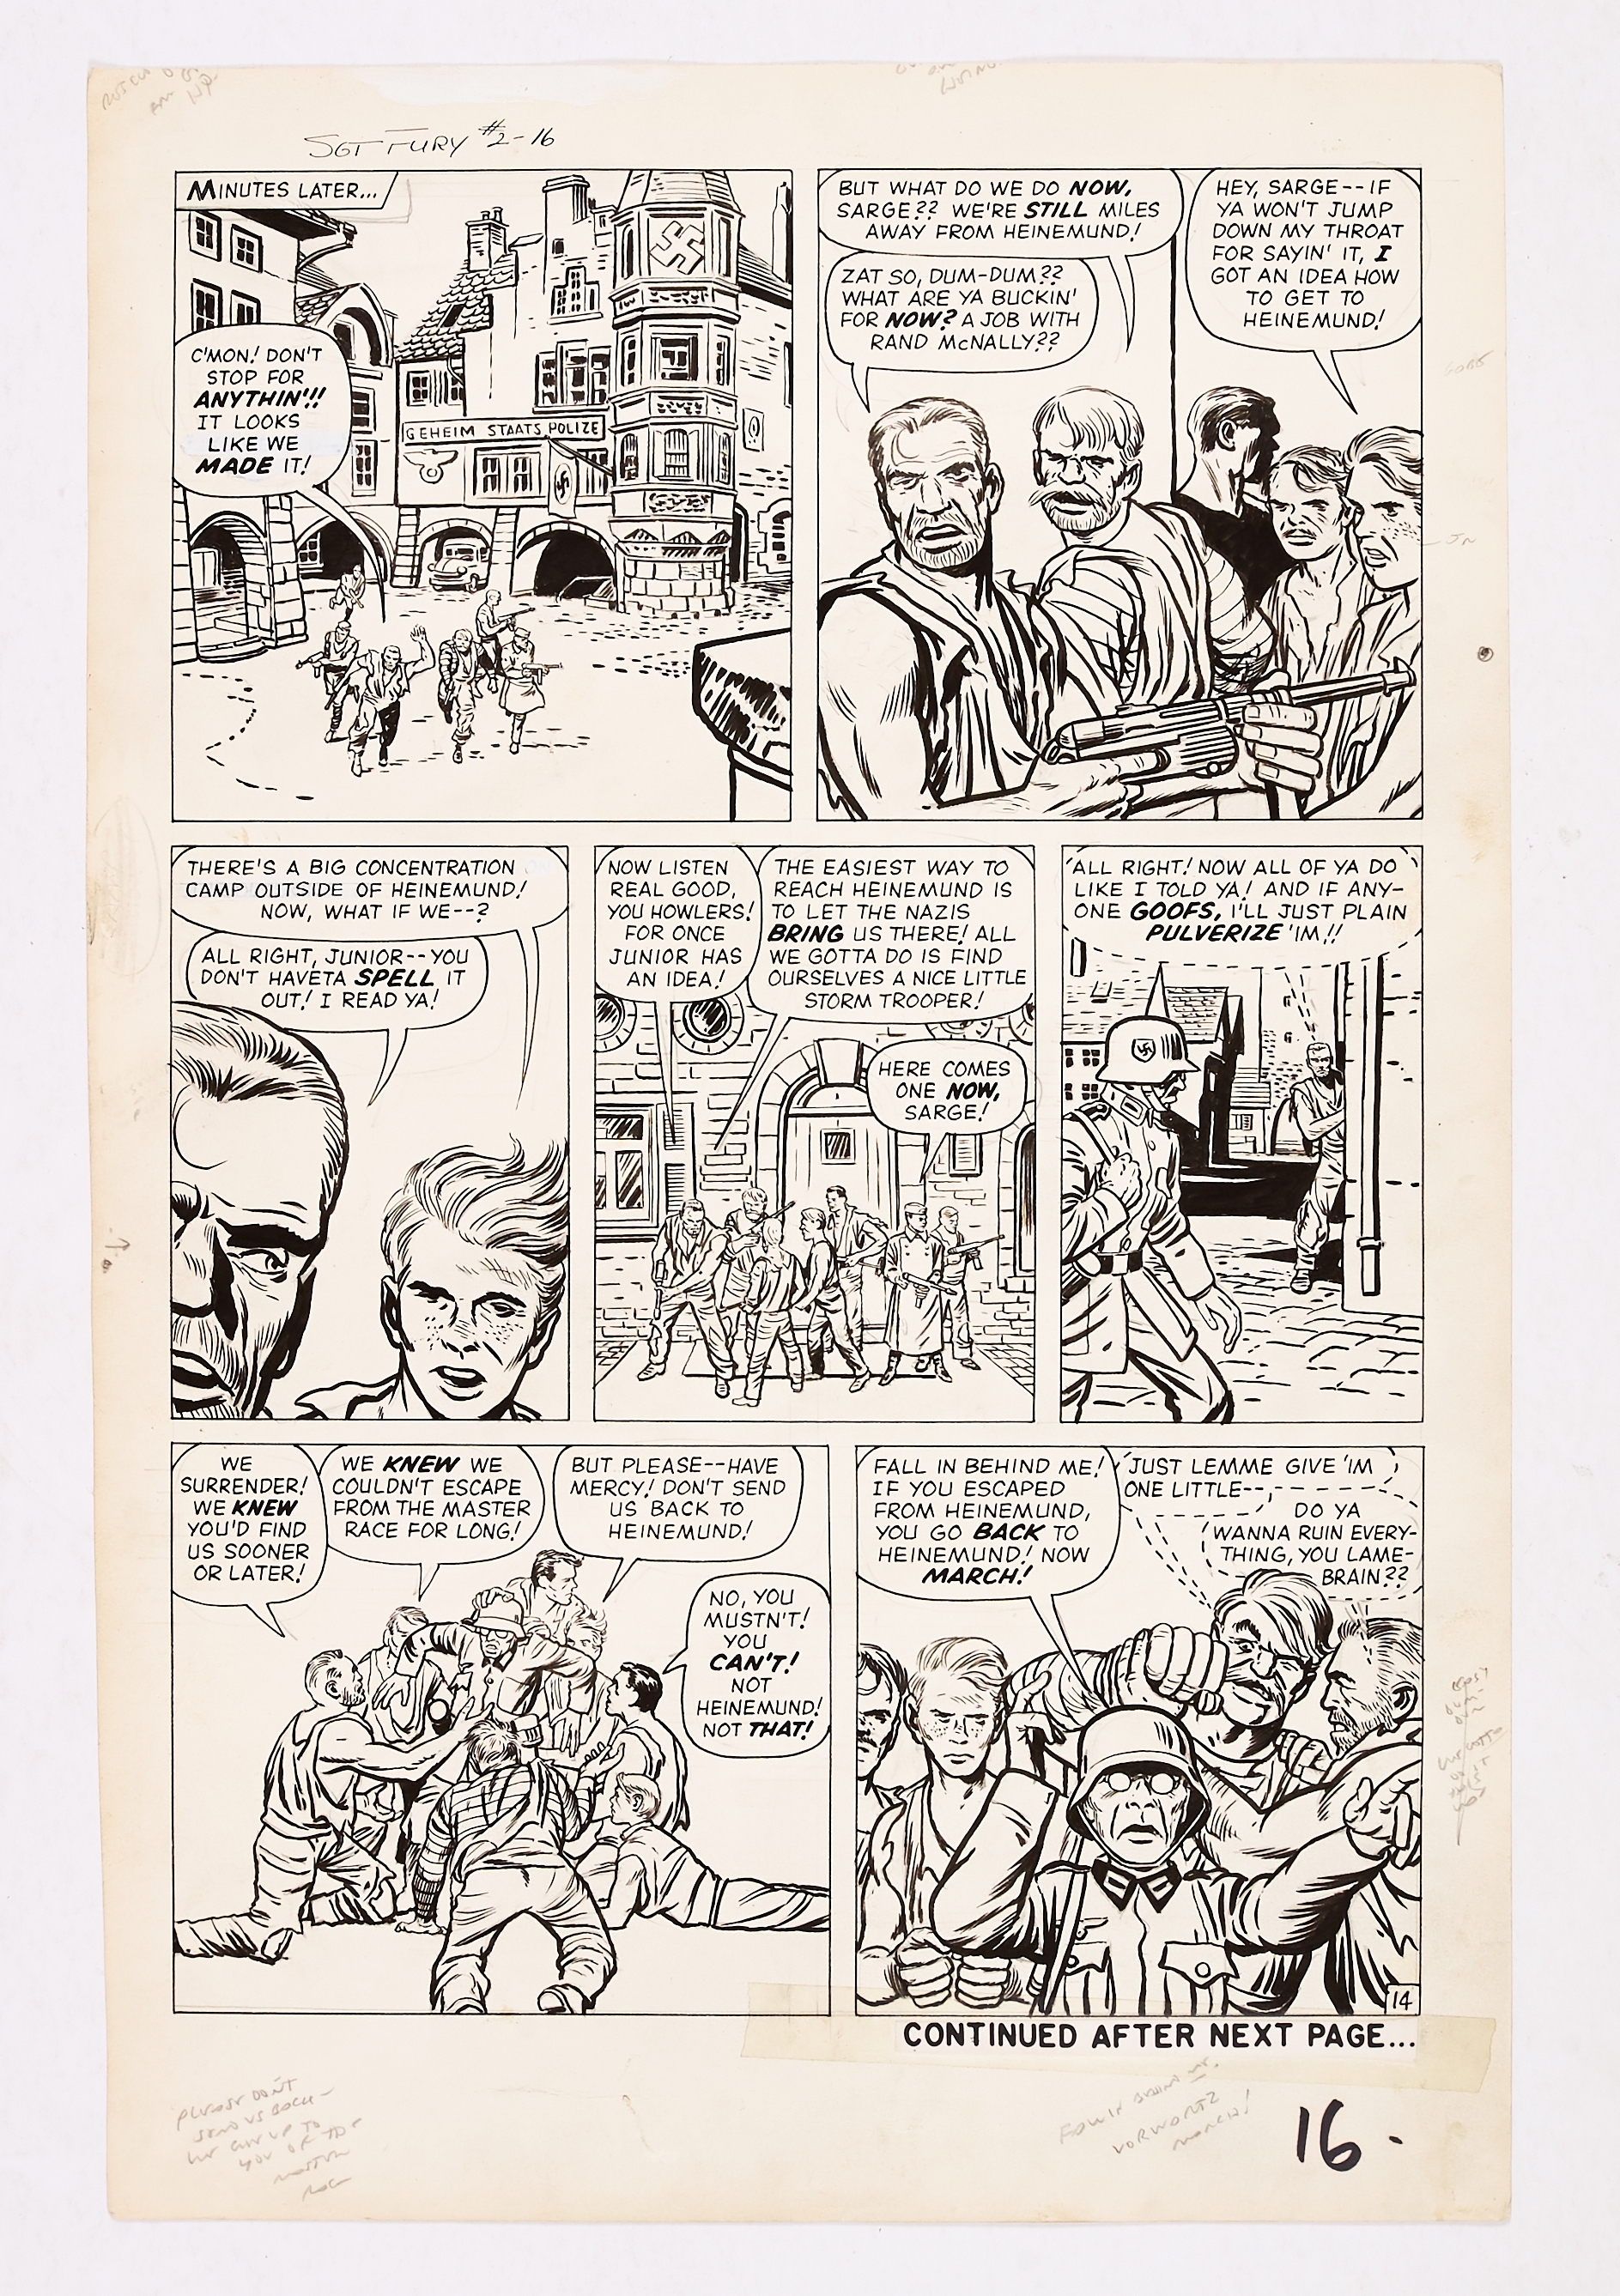 Sgt Fury #2 pg 16 (1963) original artwork by Jack Kirby. Indian ink on cartridge paper. 21 x 14 ins